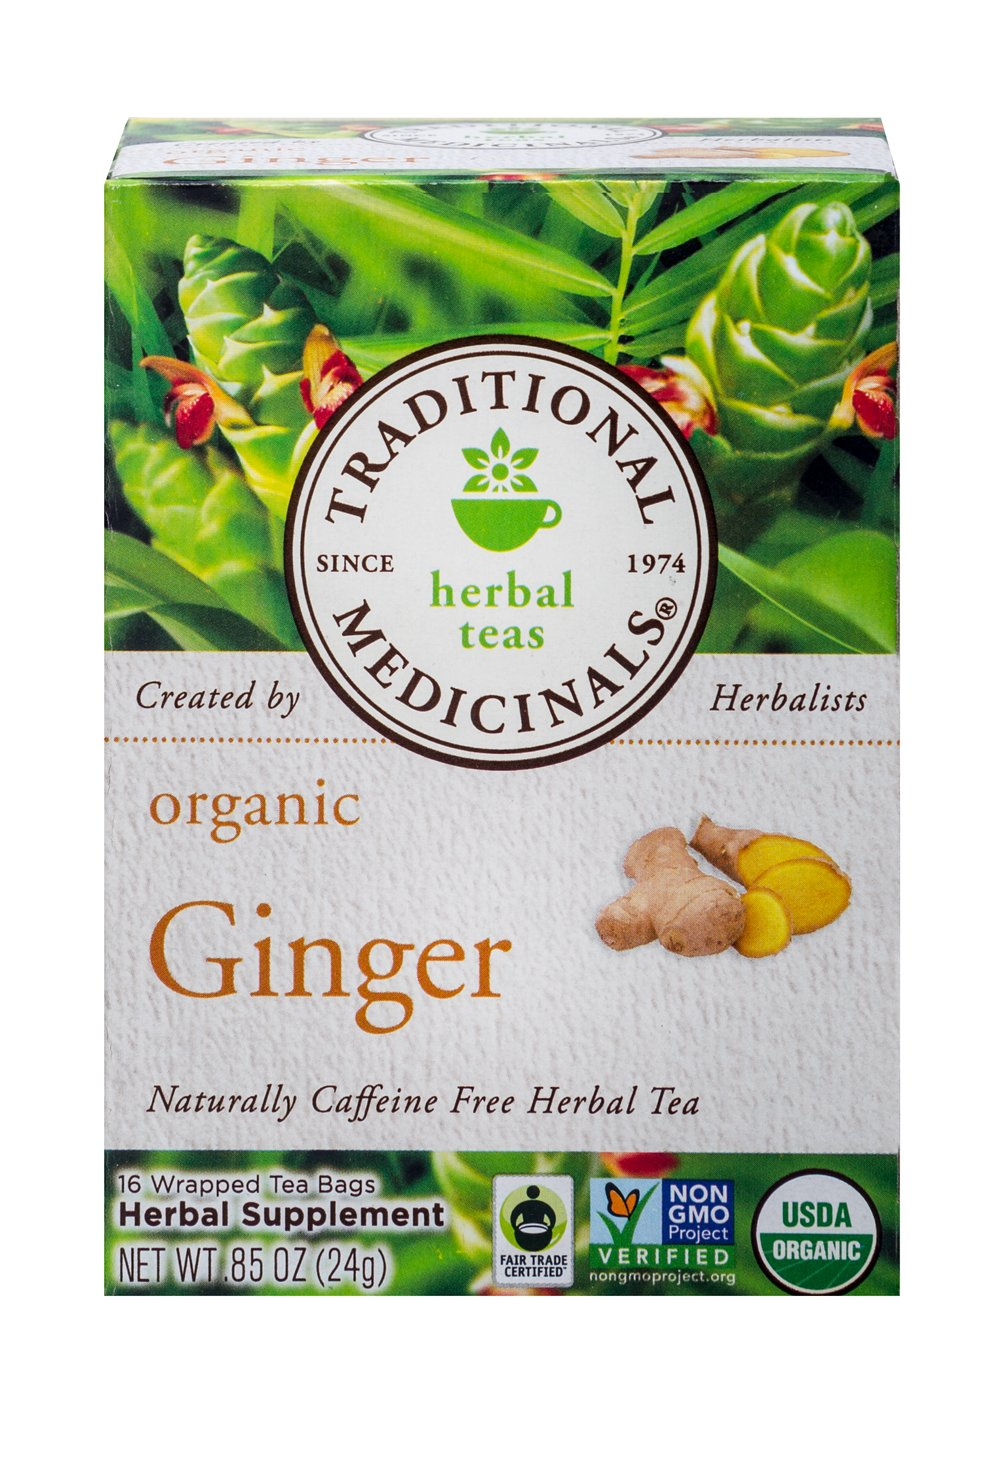 Organic Ginger Tea <p><b>From the Manufacturer</b></p> <p>Promotes Healthy Digestion**</p> <p>Caffeine Free</p>  <p>Drinking ginger tea can help relieve digestive upsets including gas and occasional indigestion.**</p>  <p>Ginger's beneficial effects on stomach function have been proven in pharmacological studies.**</p>  <p>Drink 3 cups daily, 30 minutes before meals to warm and prepare your digestive tract for food